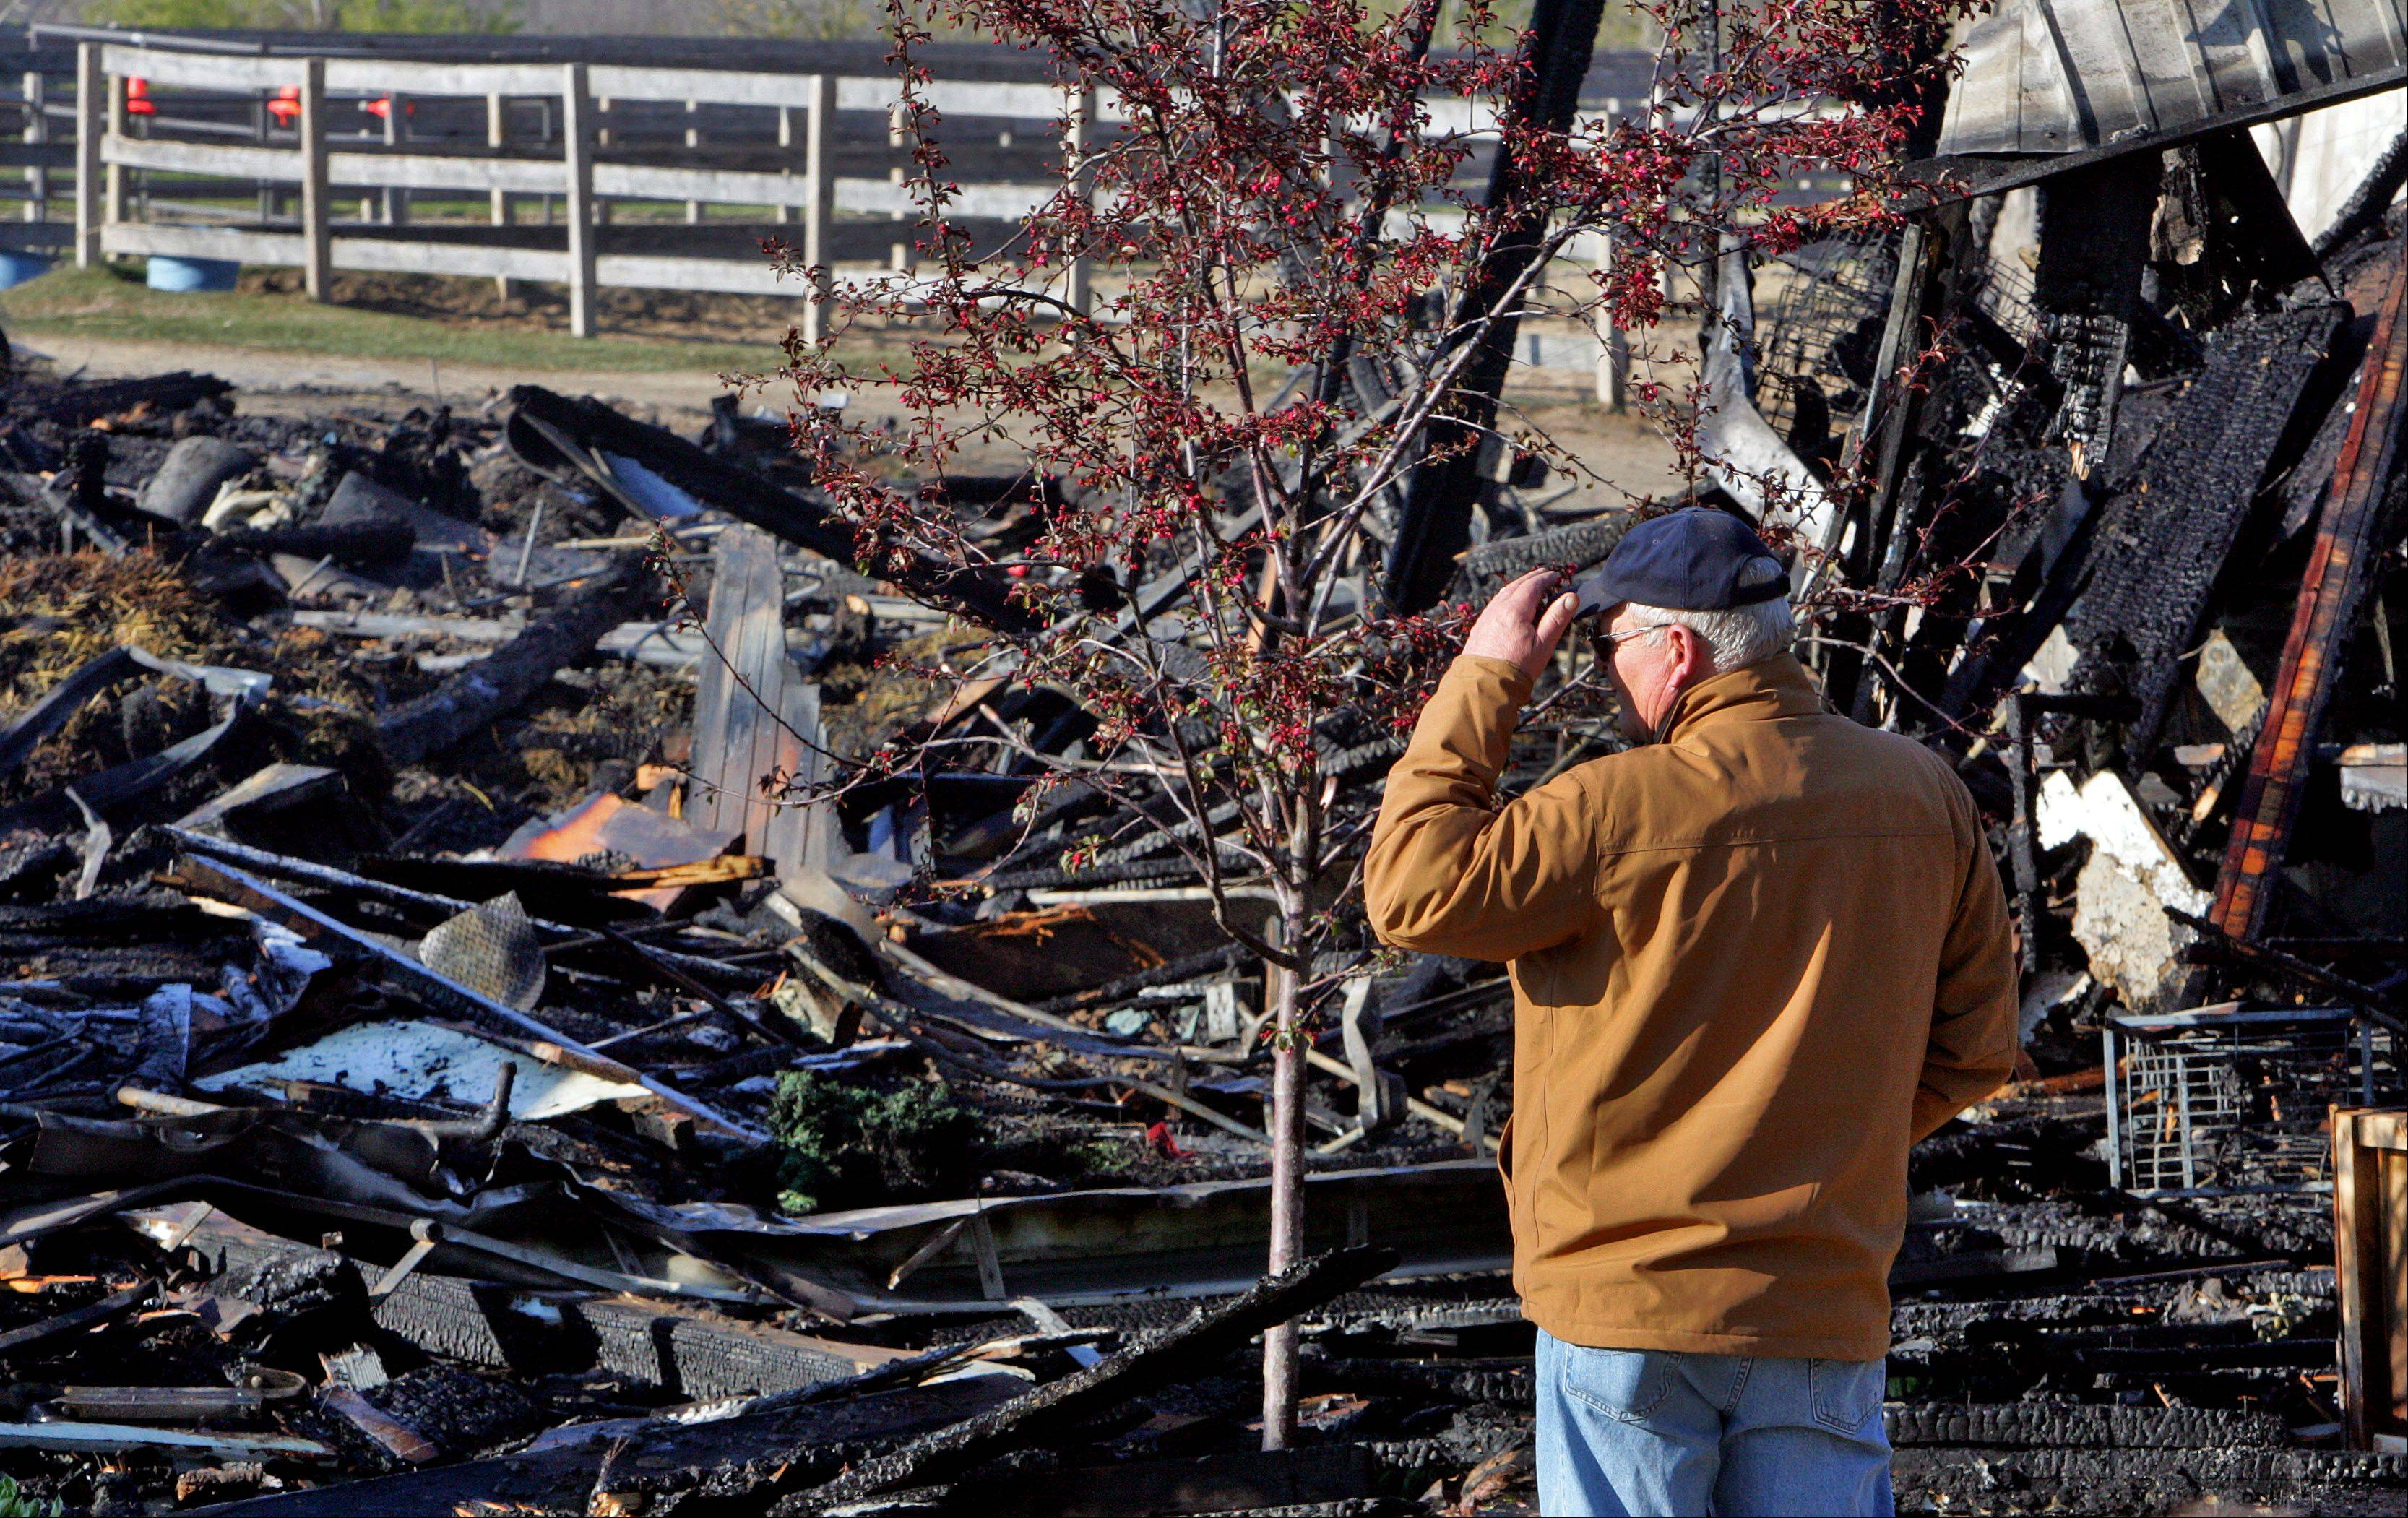 18 horses confirmed dead in McHenry stable fire; volunteers open their doors to help